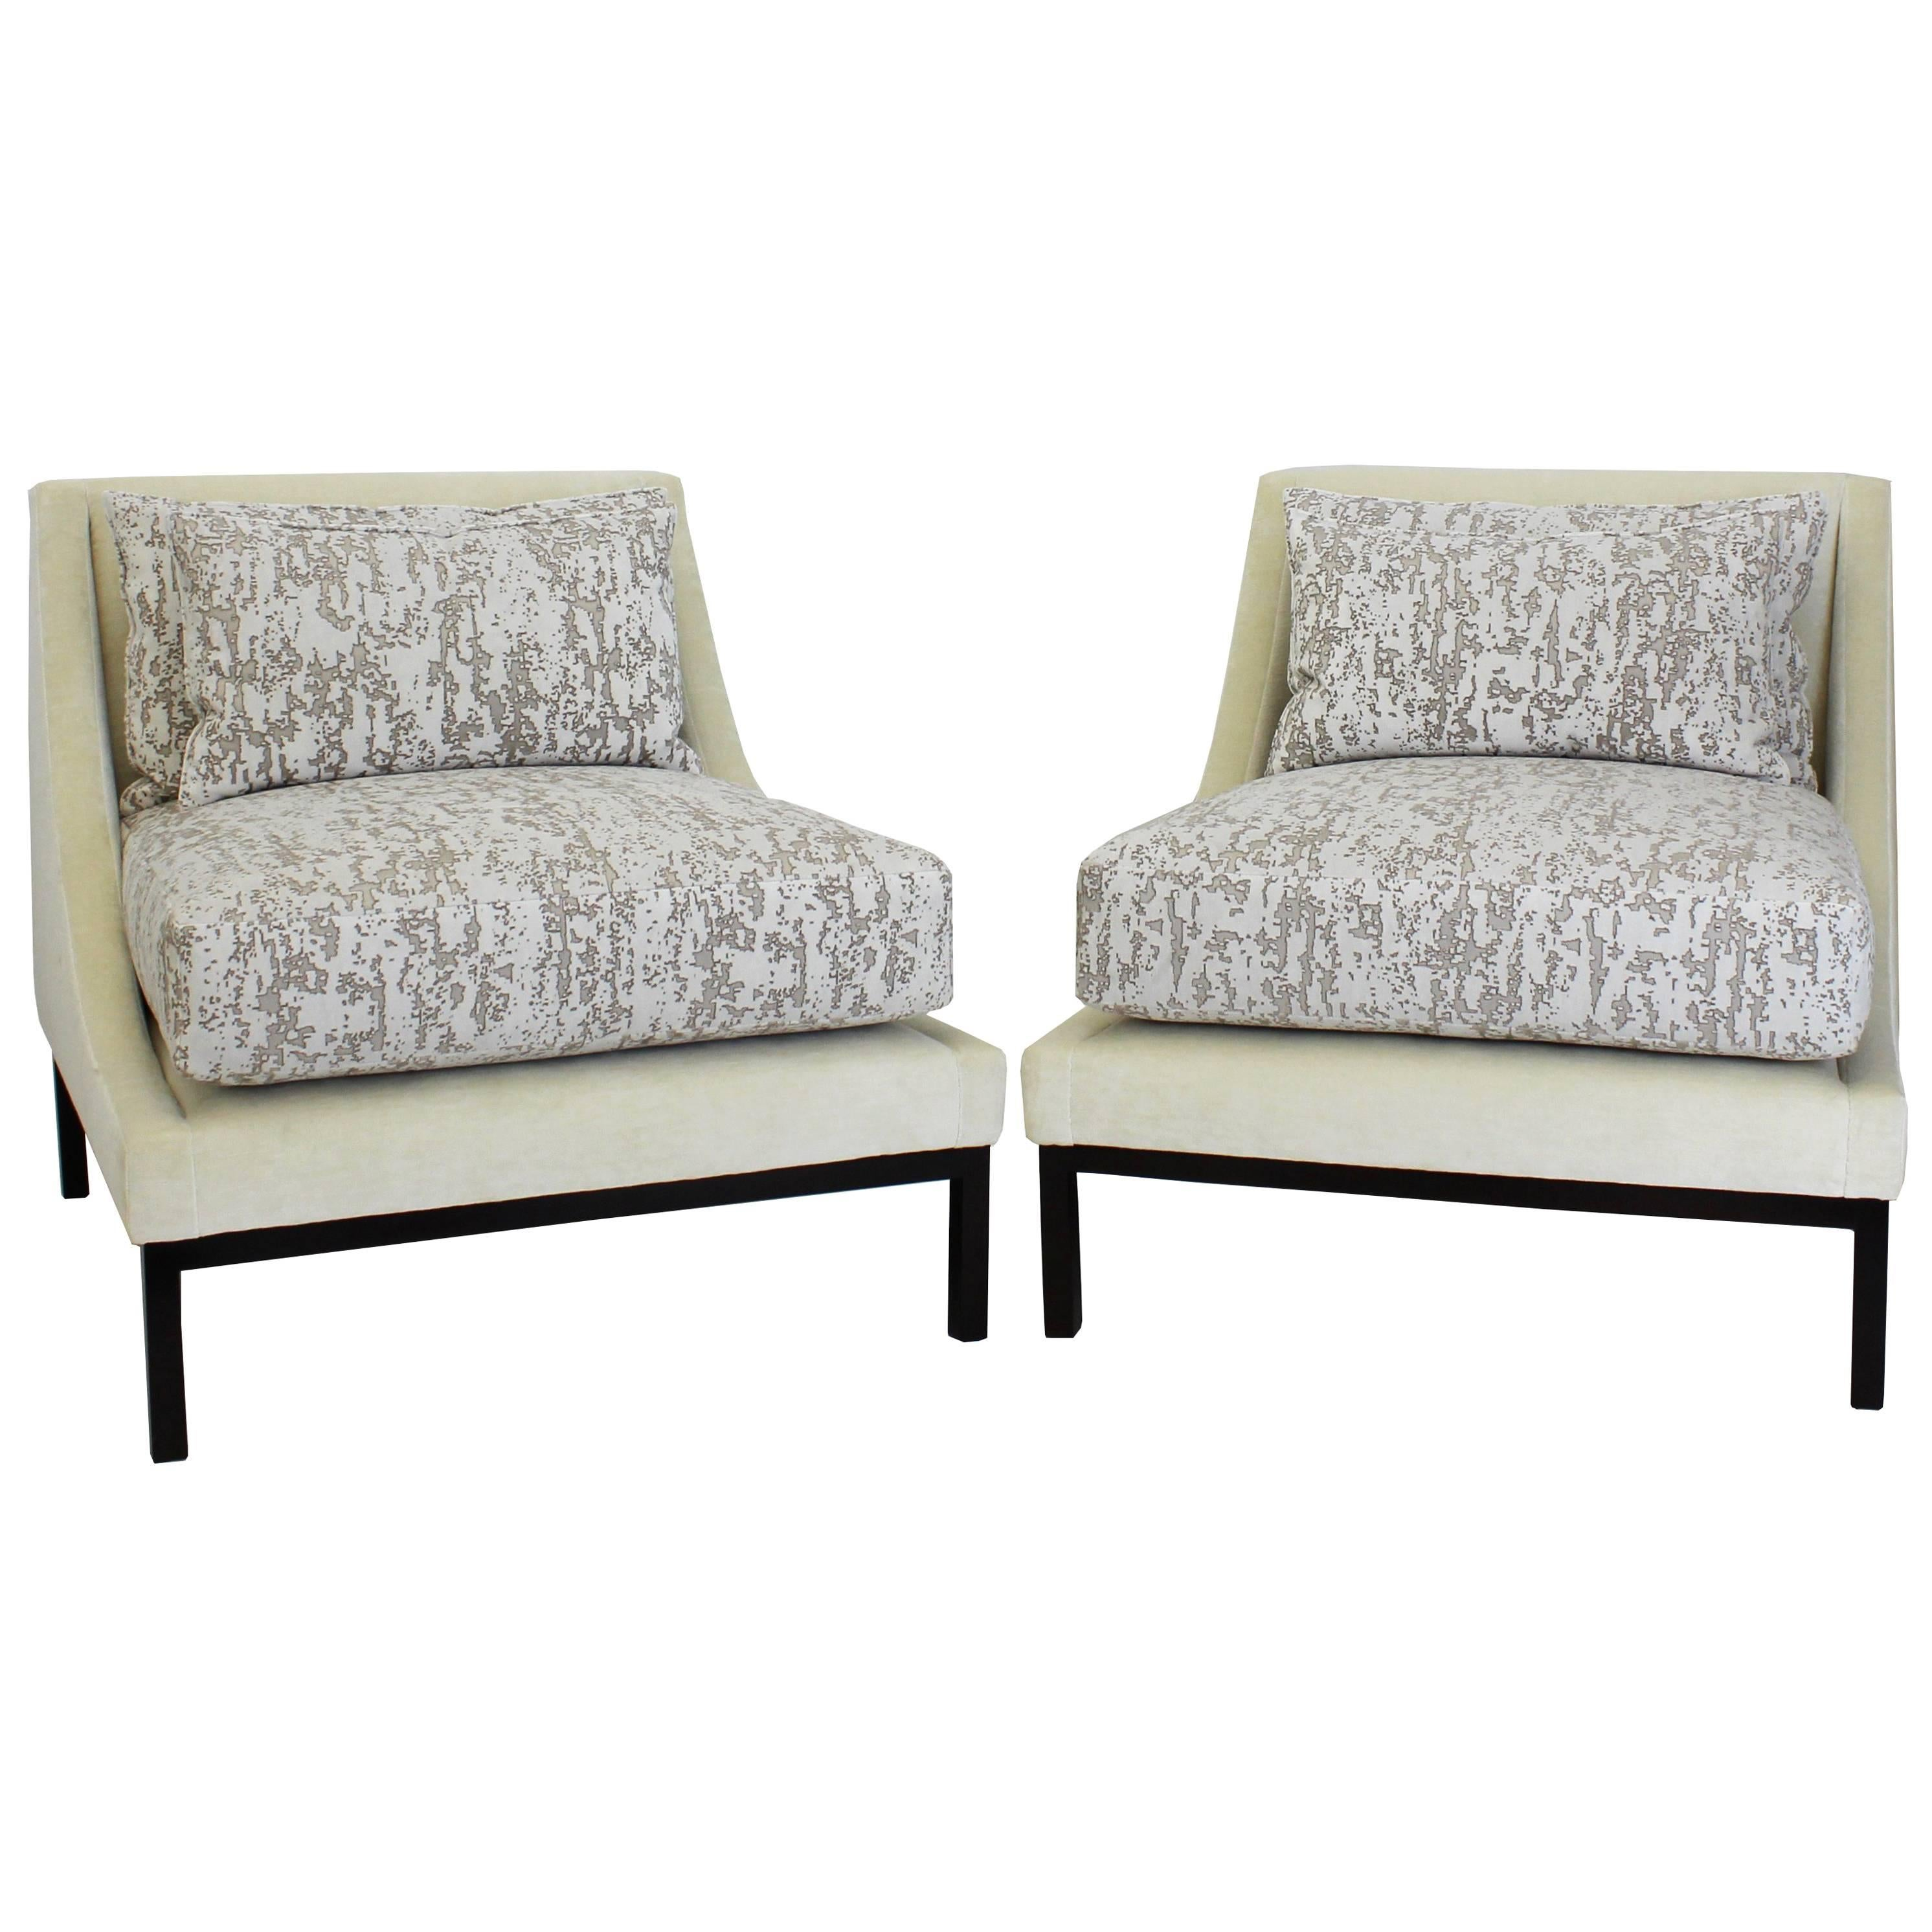 Art Deco Style Club Chair with Loose Cushions